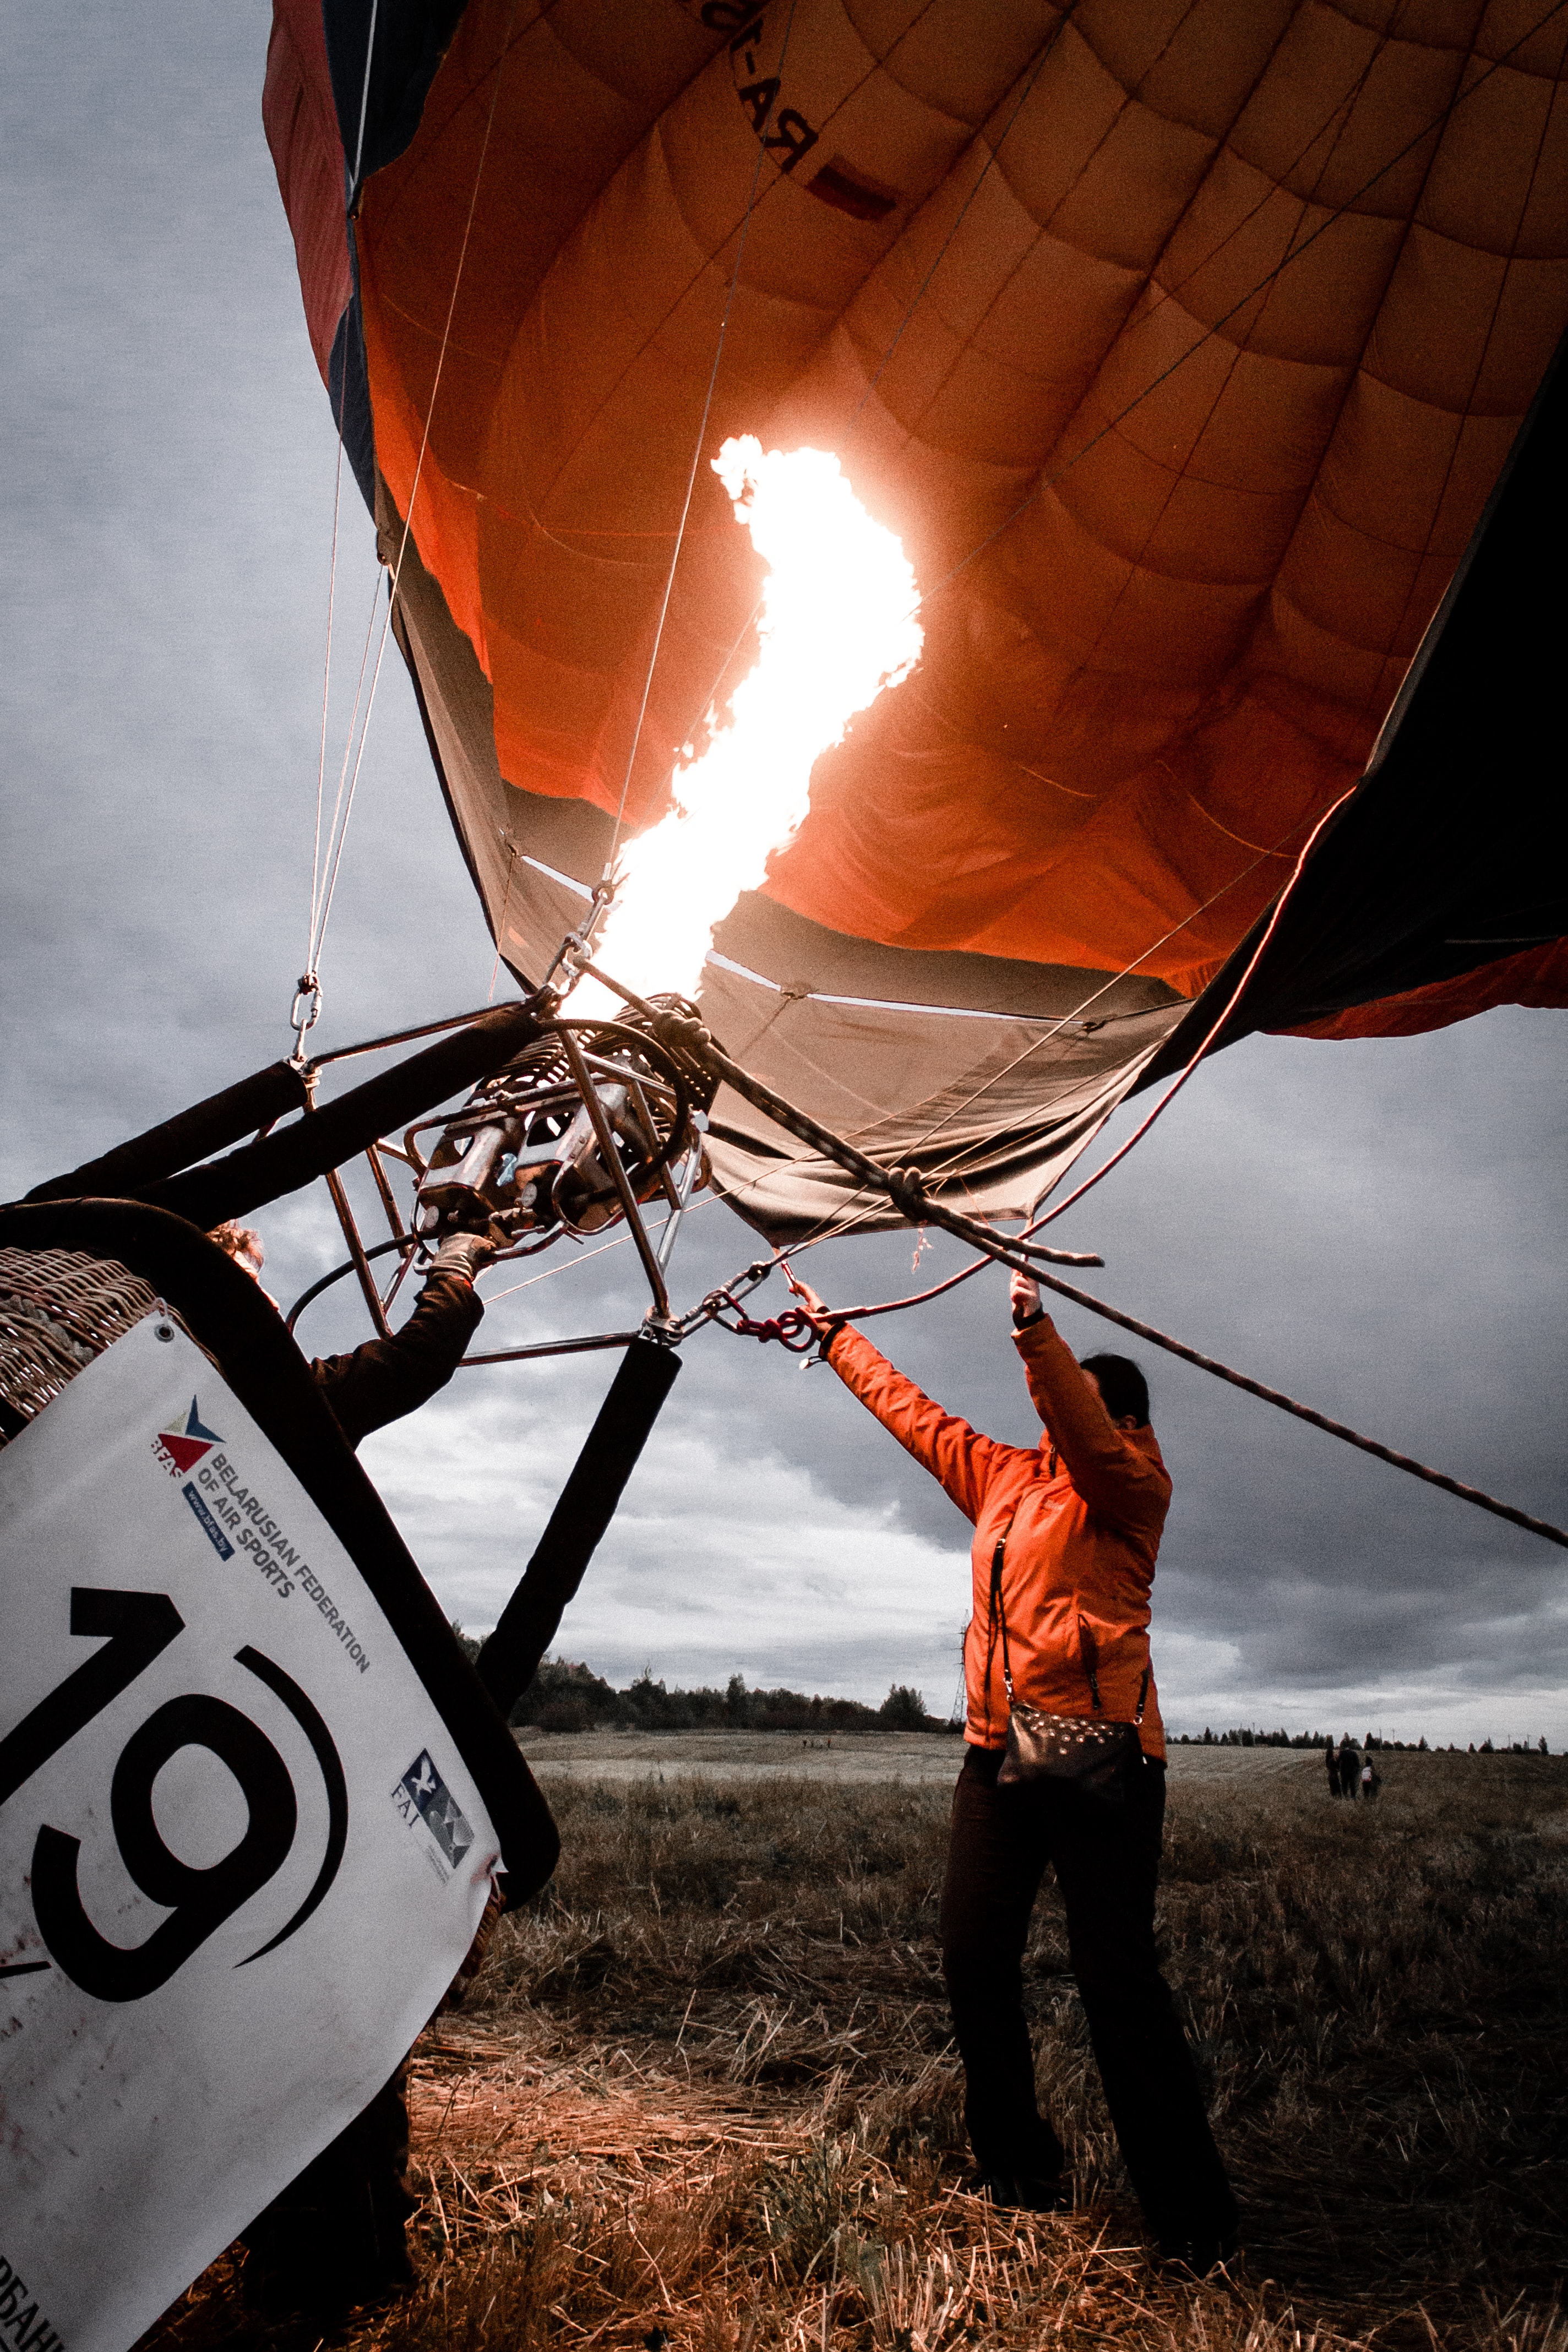 person arranging orange and black hot air balloon during daytime